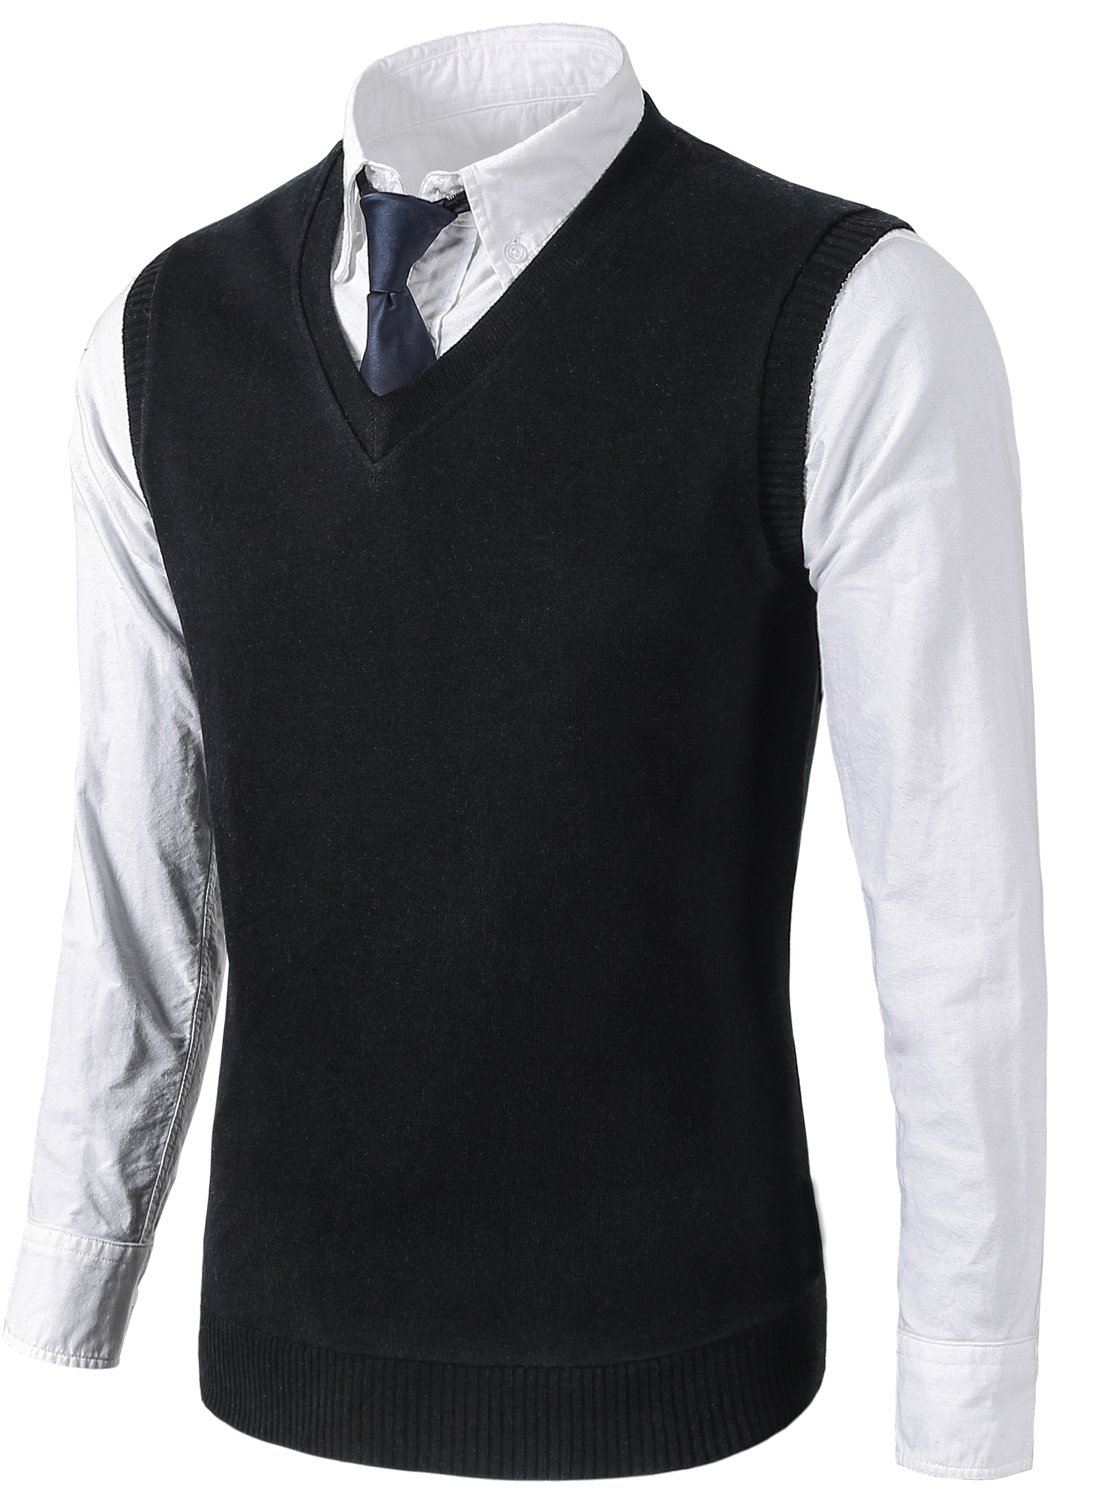 MIEDEON Mens Various Color Casual Slim Fit Knit Vest sweater,Large,Black